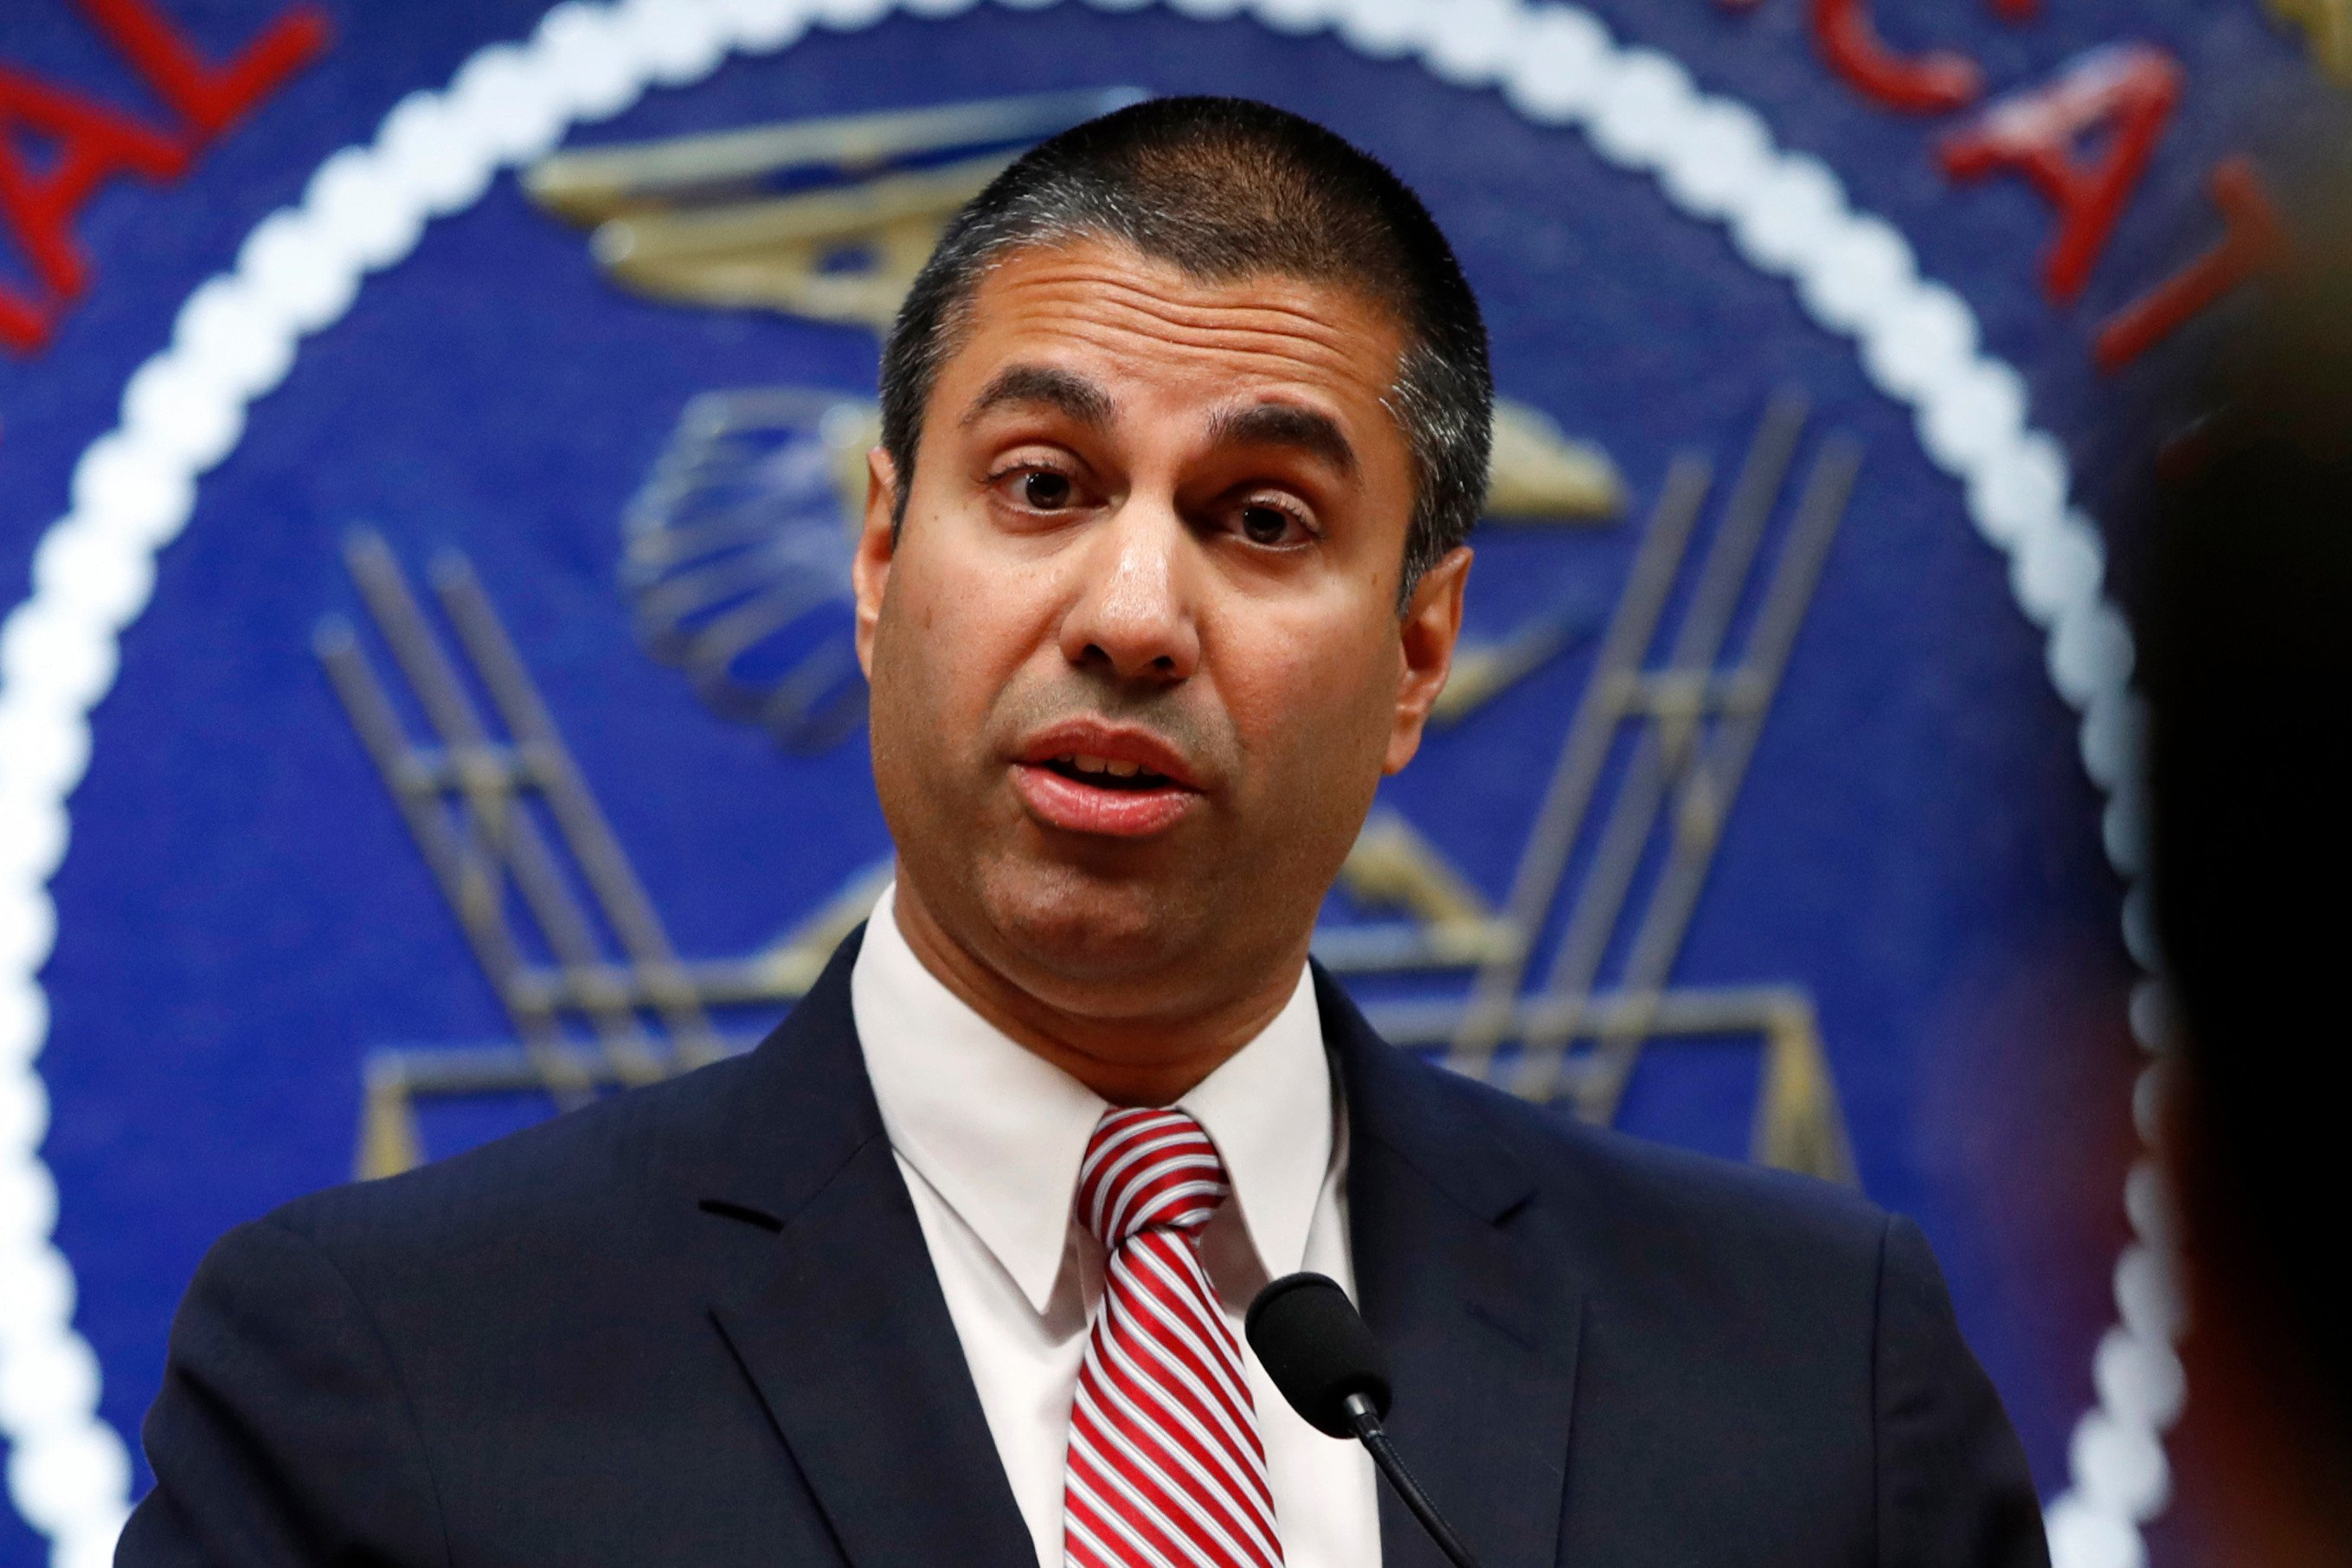 FCC chair Ajit Pai backs out of CES appearance